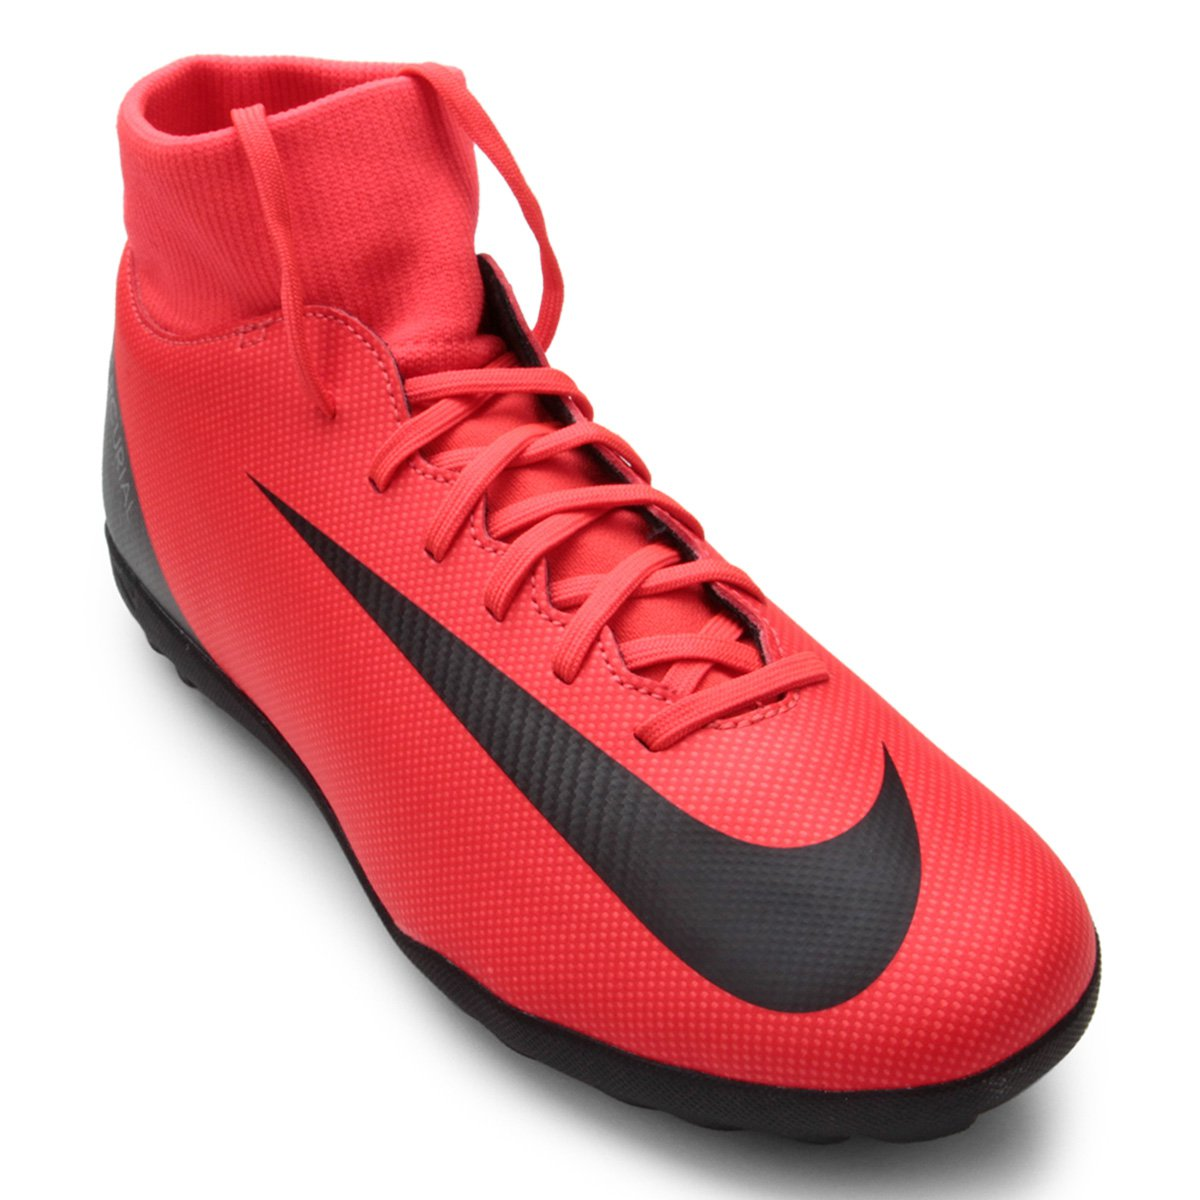 b0c62e35a8 Chuteira Society Nike Mercurial Superfly 6 Club CR7 TF